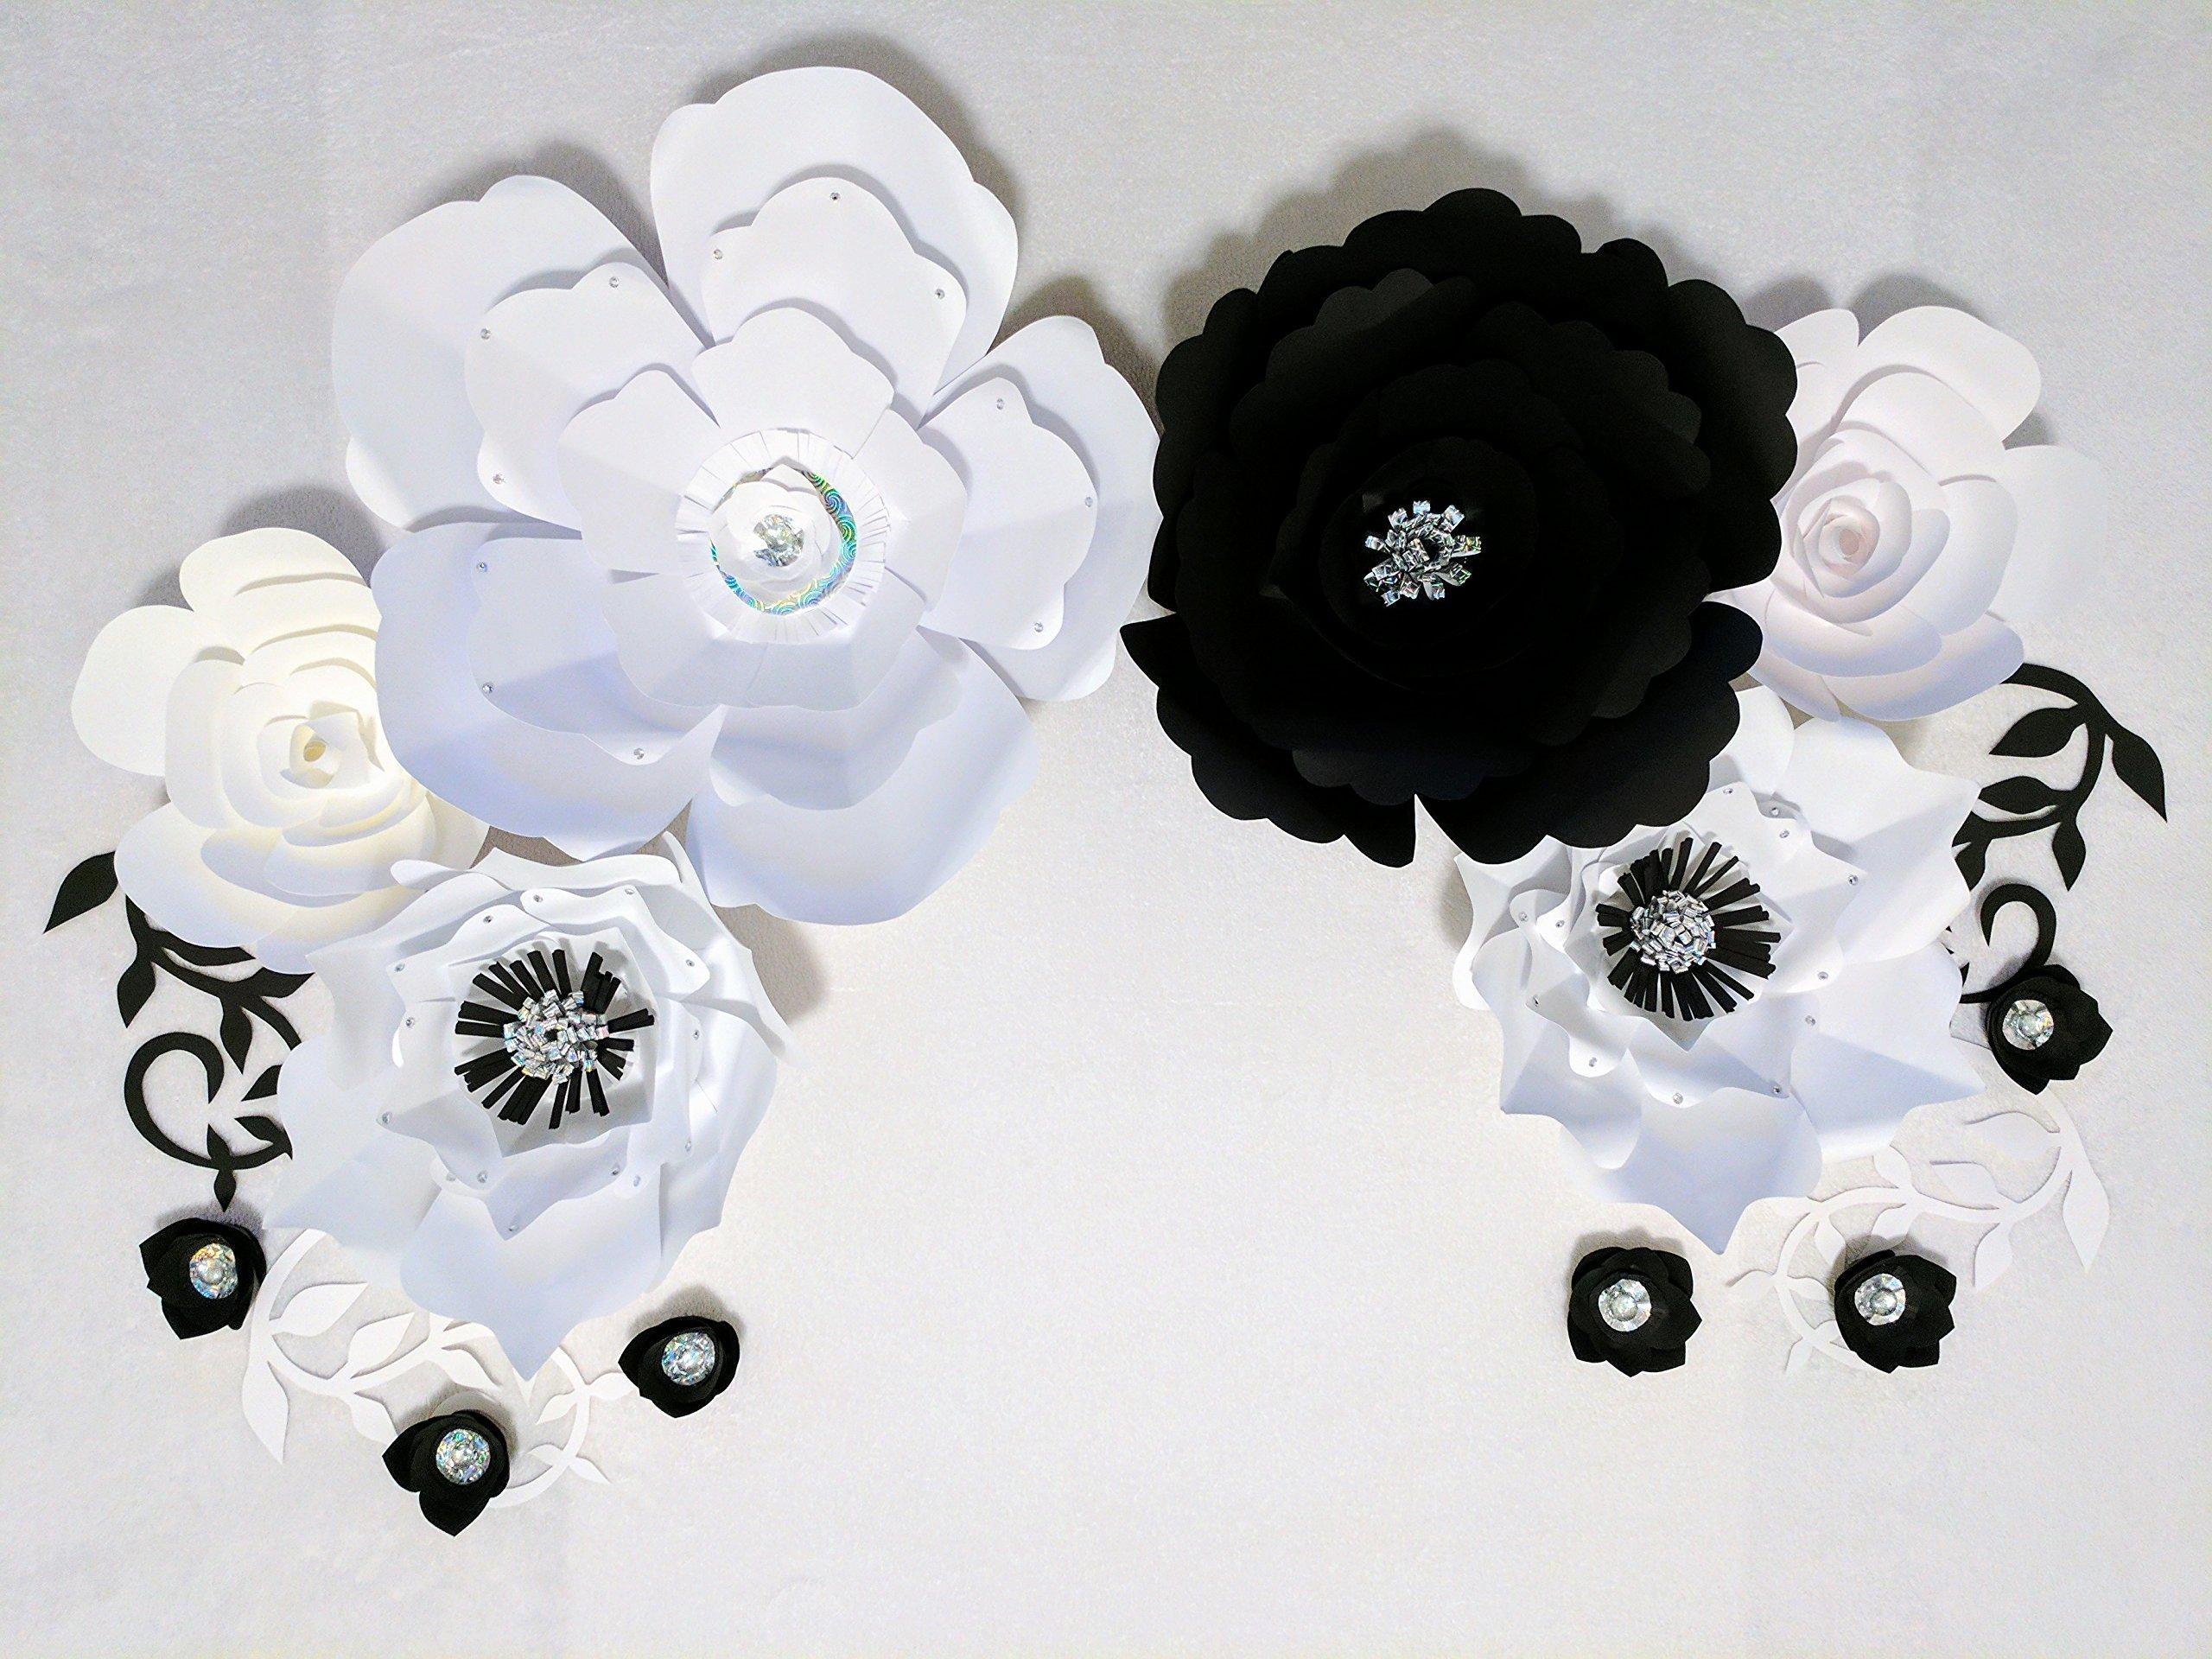 Paper-Flowers-for-Backdrops-Includes-12-Paper-Flowers-and-4-Paper-Branch-Leaves-Fully-Assembled